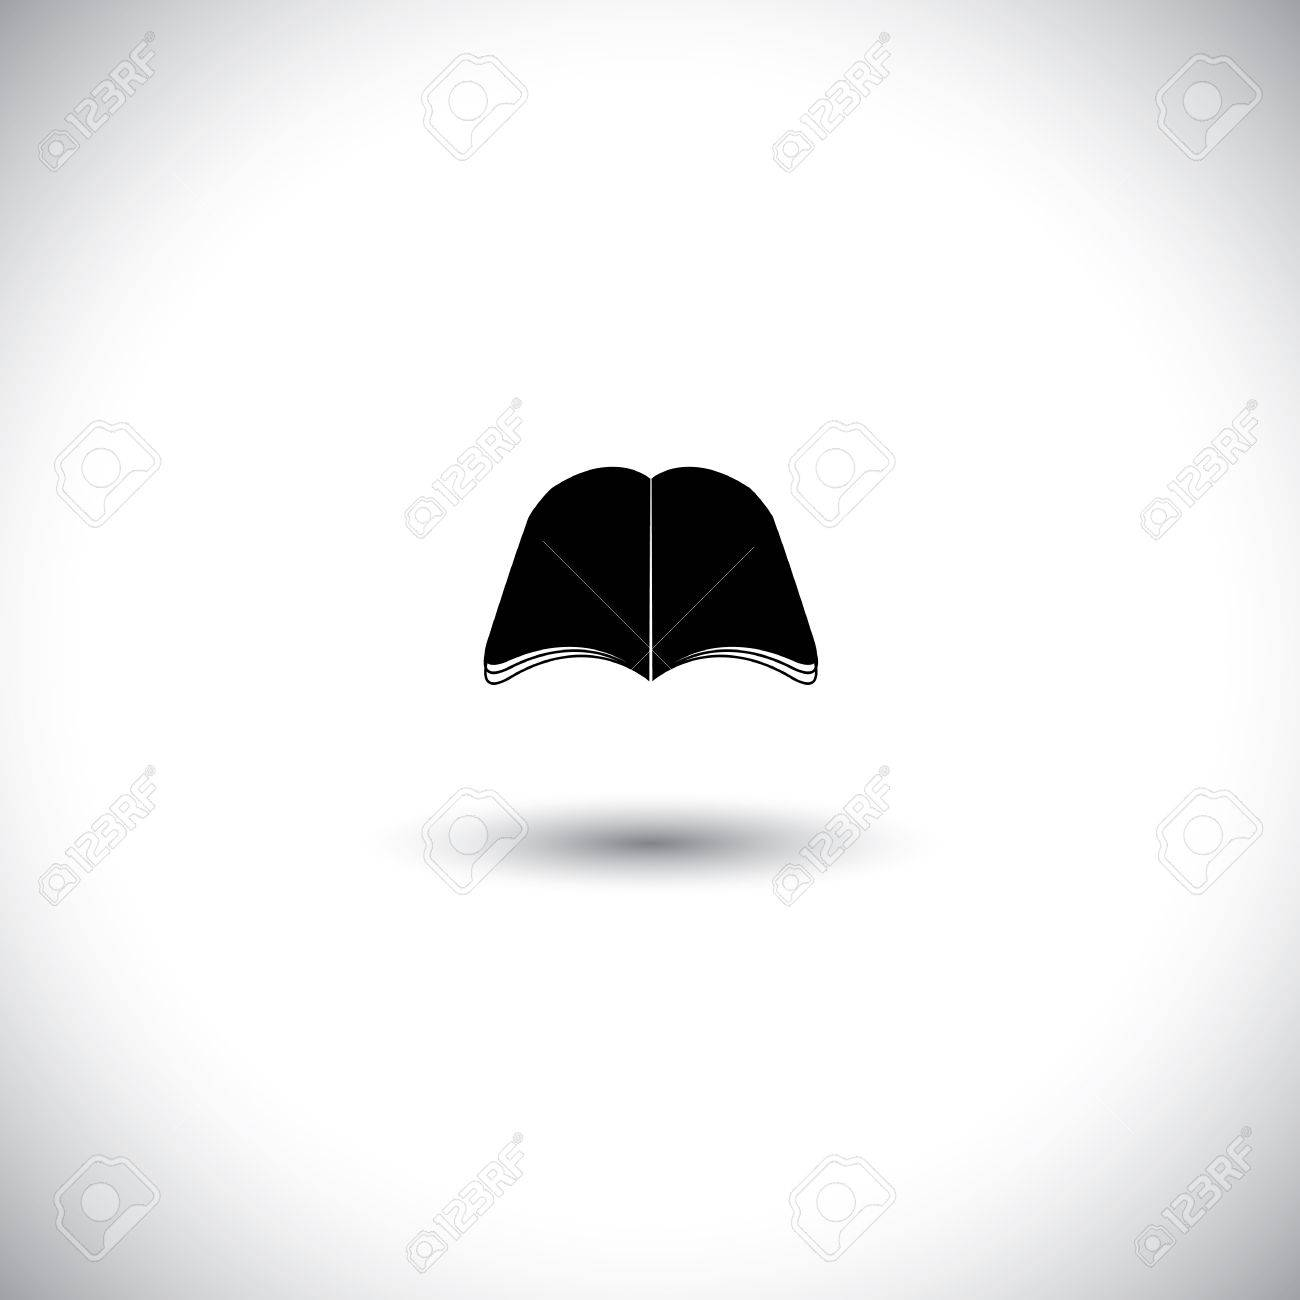 Concept vector icon as silhouette - book sign in black. This graphic illustration also represents magazine, encyclopedia, paperback, empty booklet, ebook, brochure, bible, guide, schooling, etc Stock Vector - 26033461